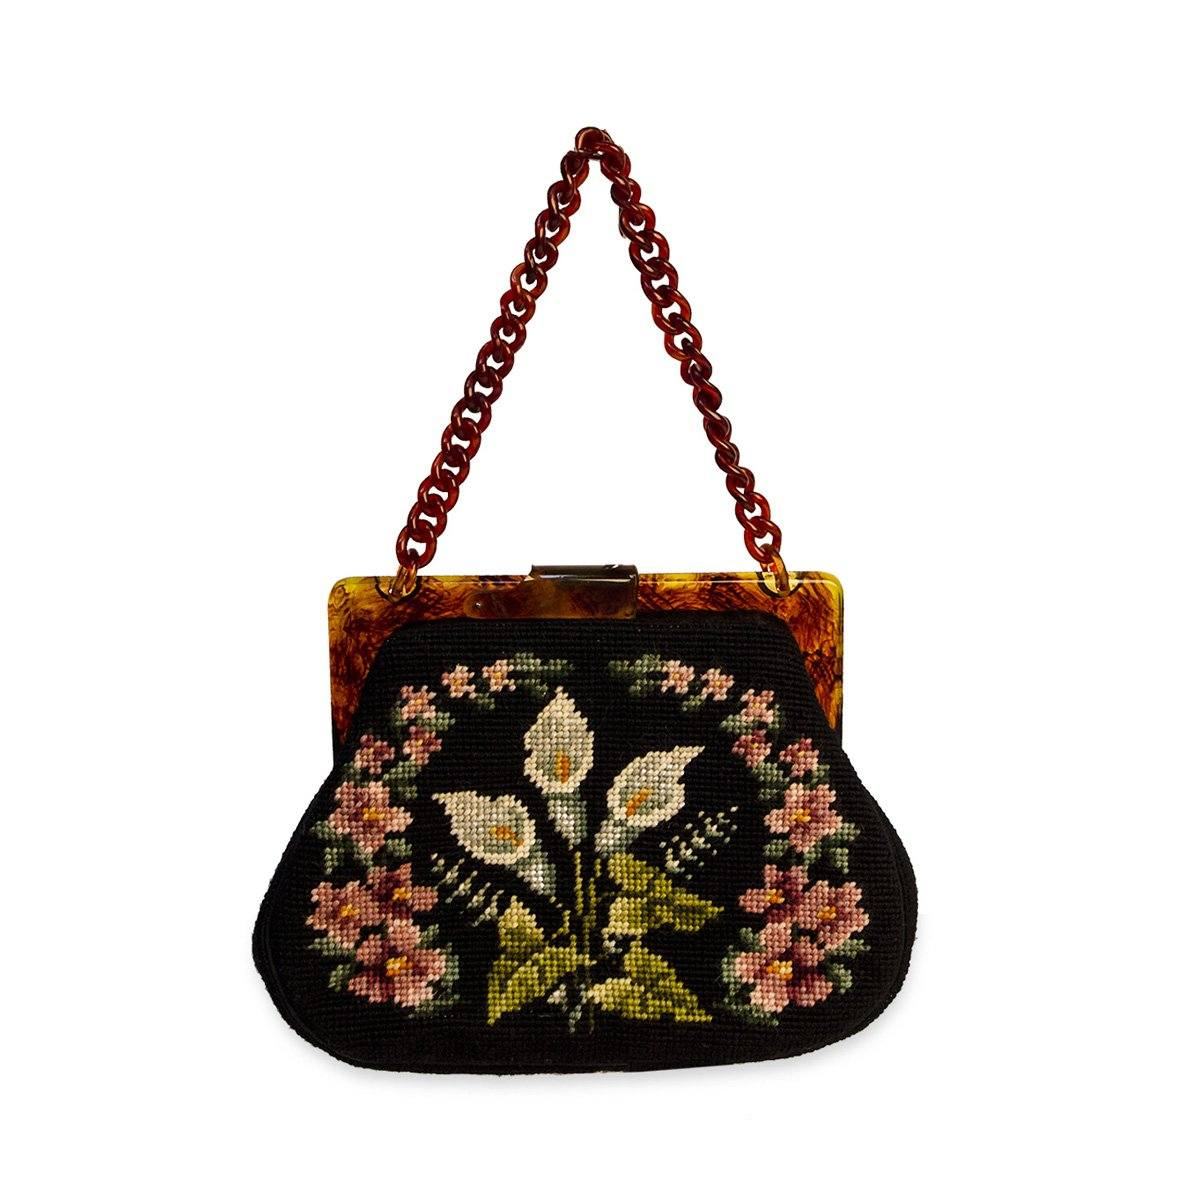 Maud Hundley Needlepoint handbag, Black, Pink, Blue, White Floral